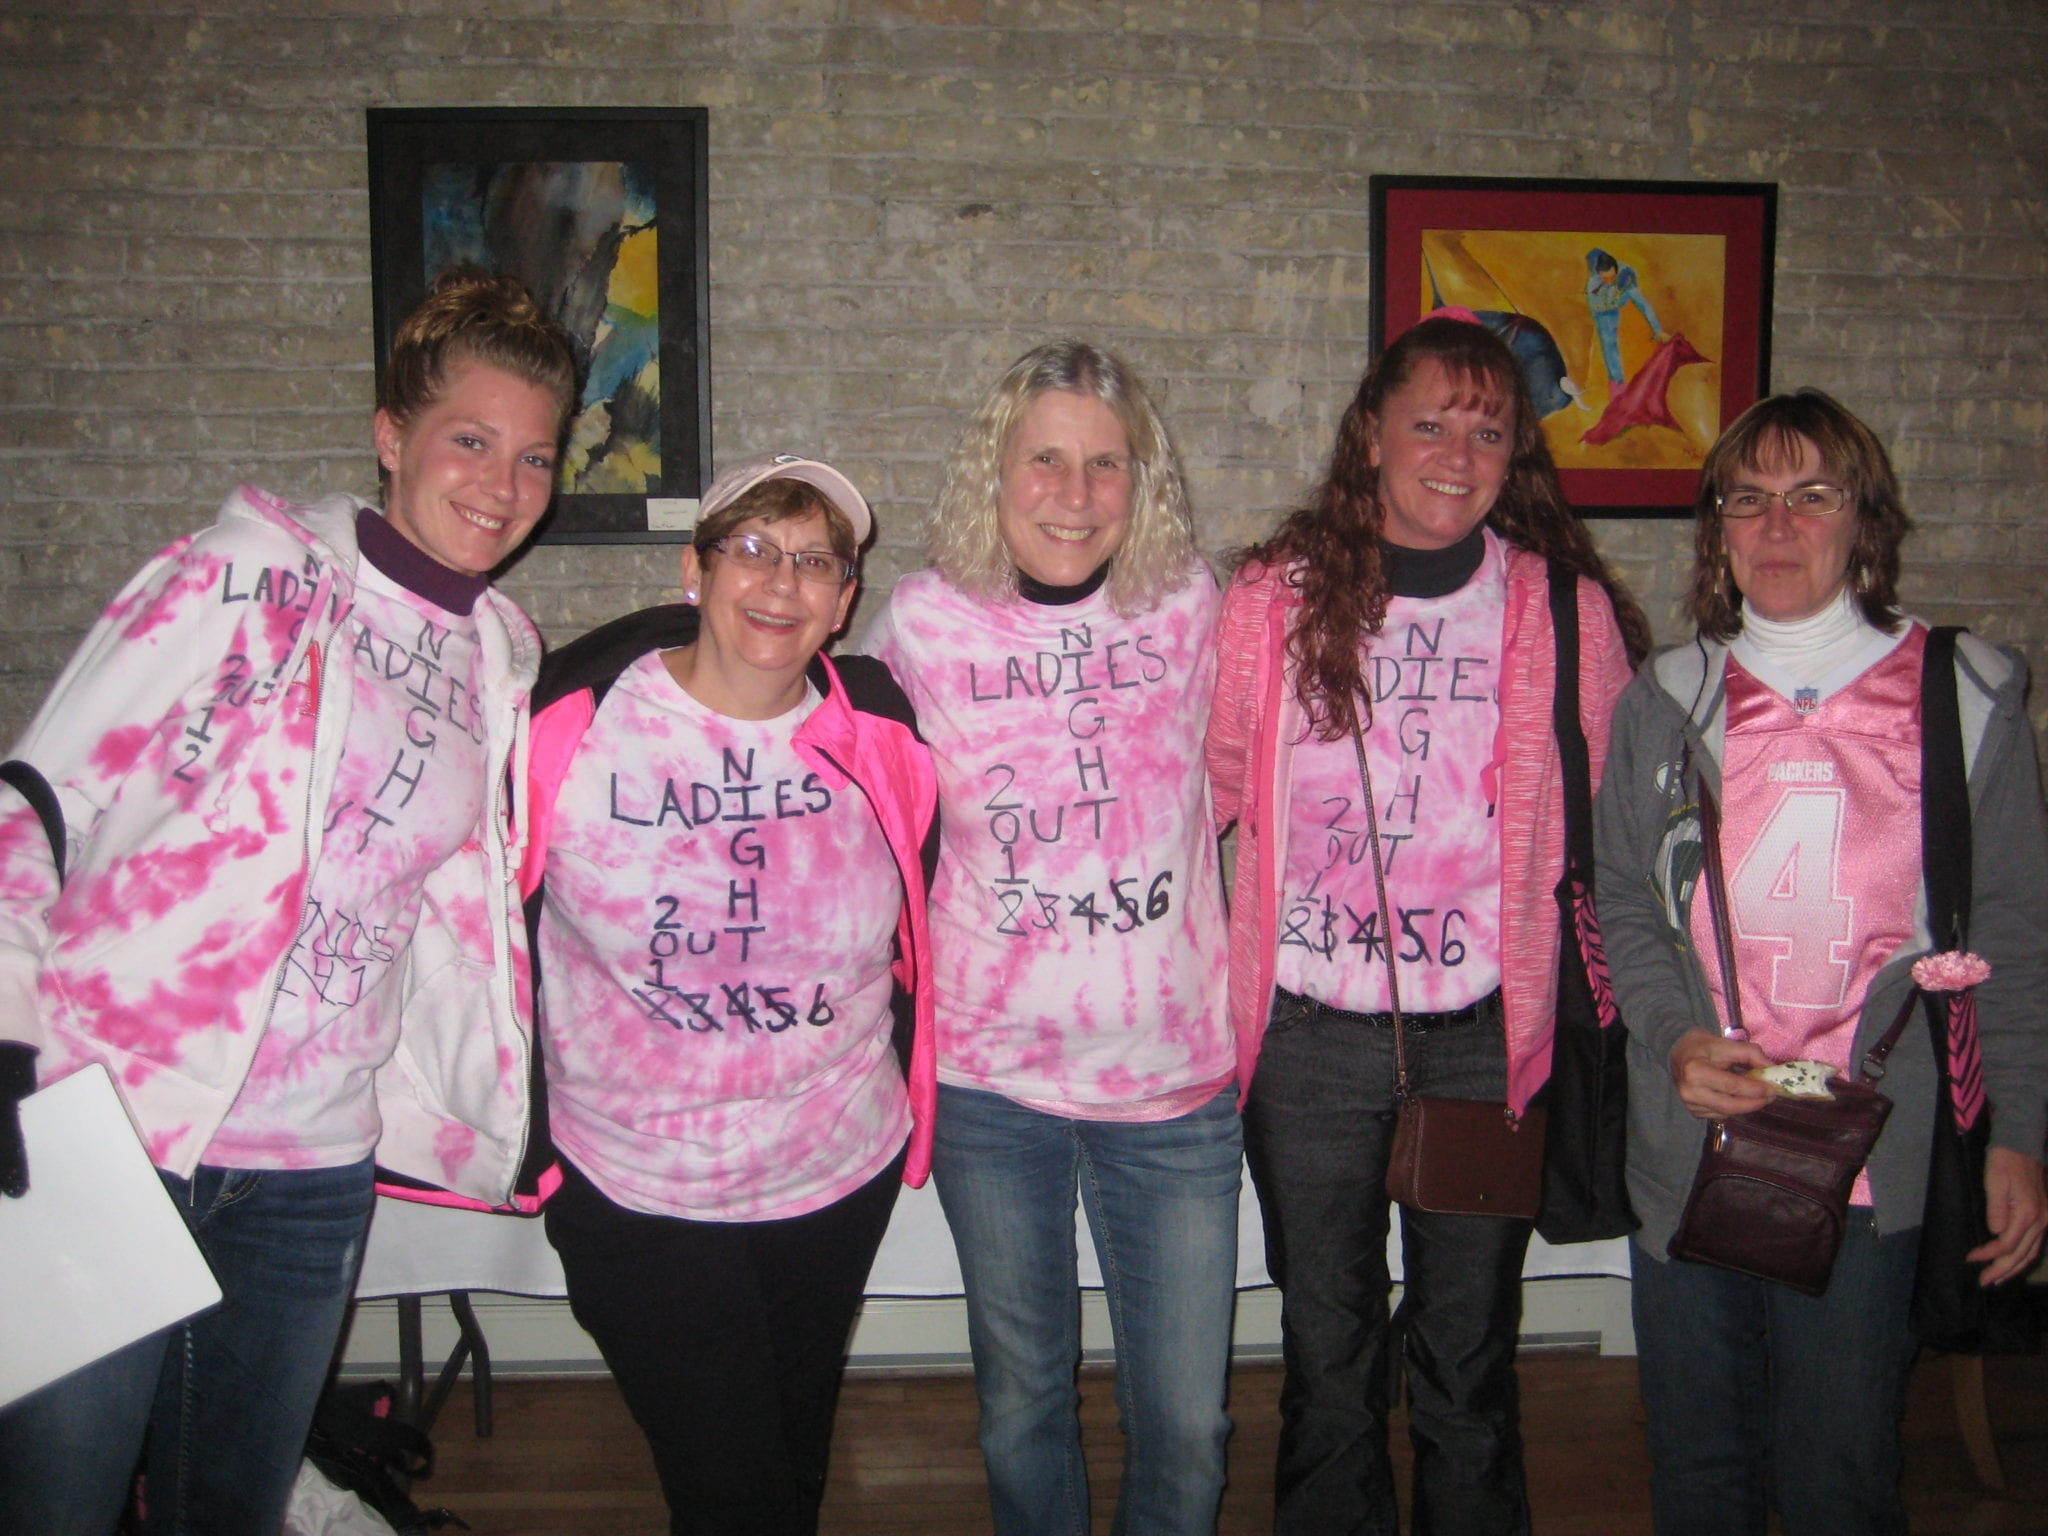 Sheboygan Falls - Ladies Nite Out